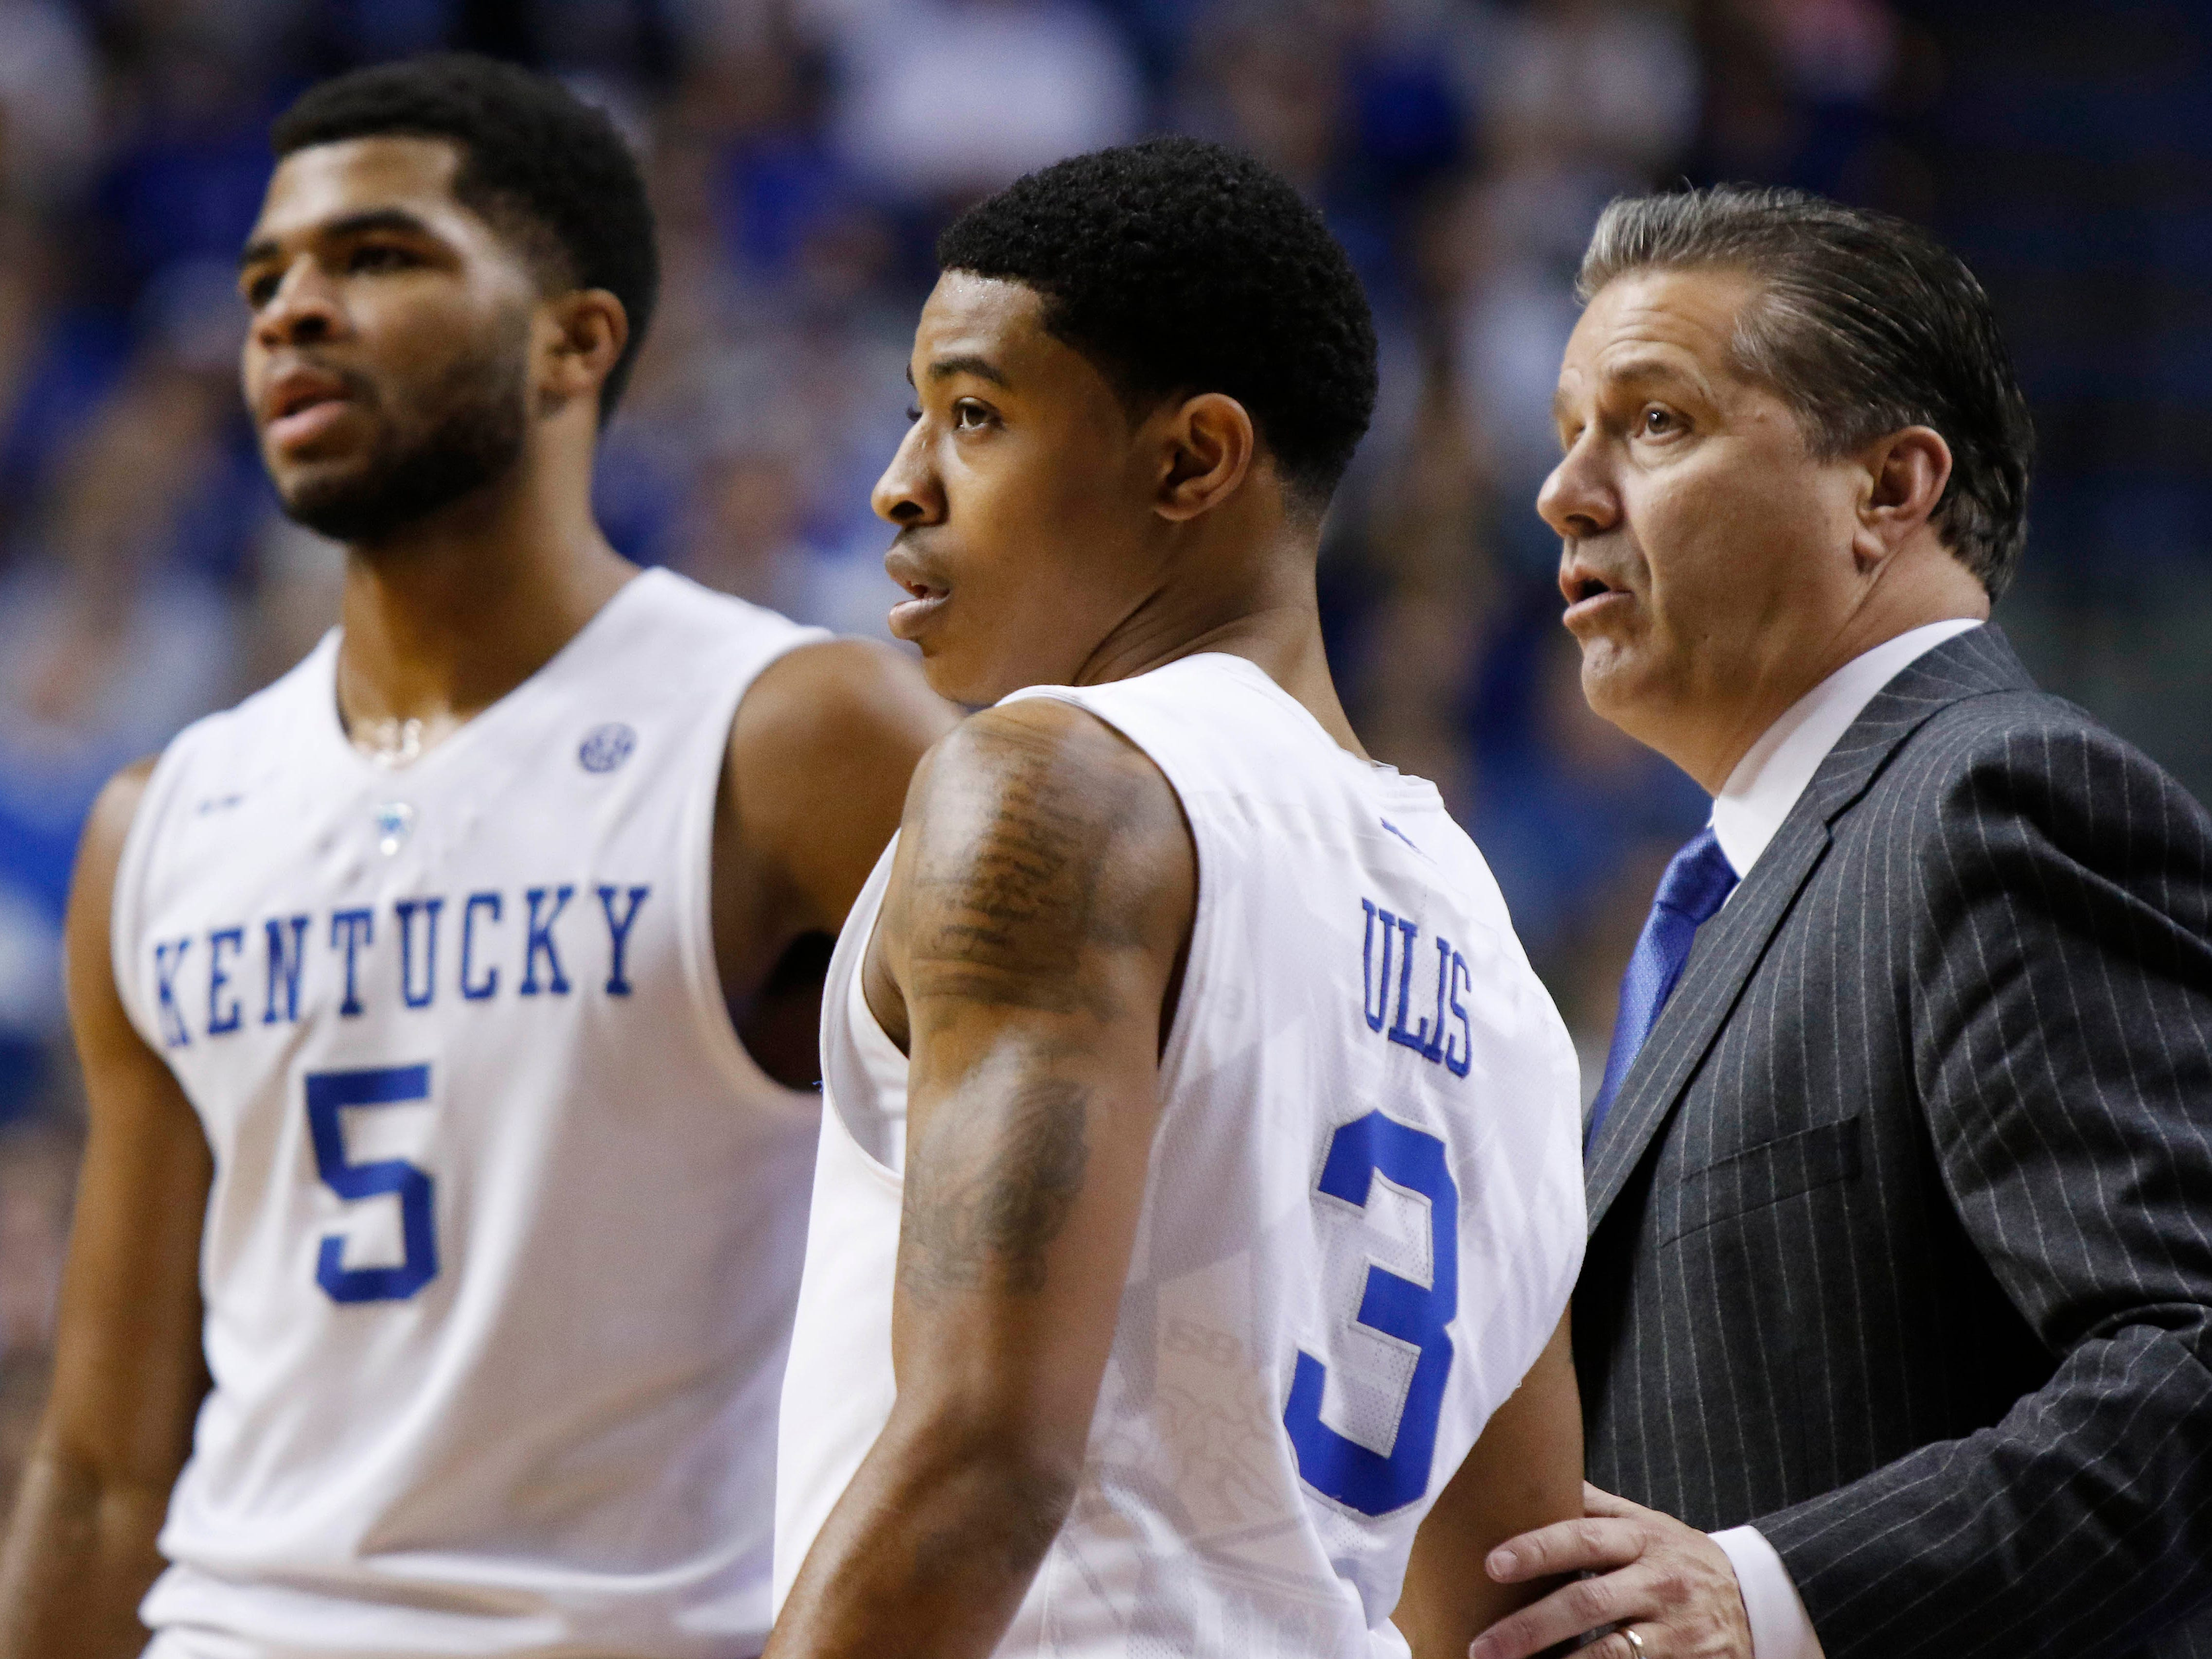 Kentucky head coach John Calipari, right, instructs Andrew Harrison (5) and Tyler Ulis (3) during the second half of an NCAA college basketball game against South Carolina, Saturday, Feb. 14, 2015, in Lexington, Ky. Kentucky won 77-43. (AP Photo/James Crisp)